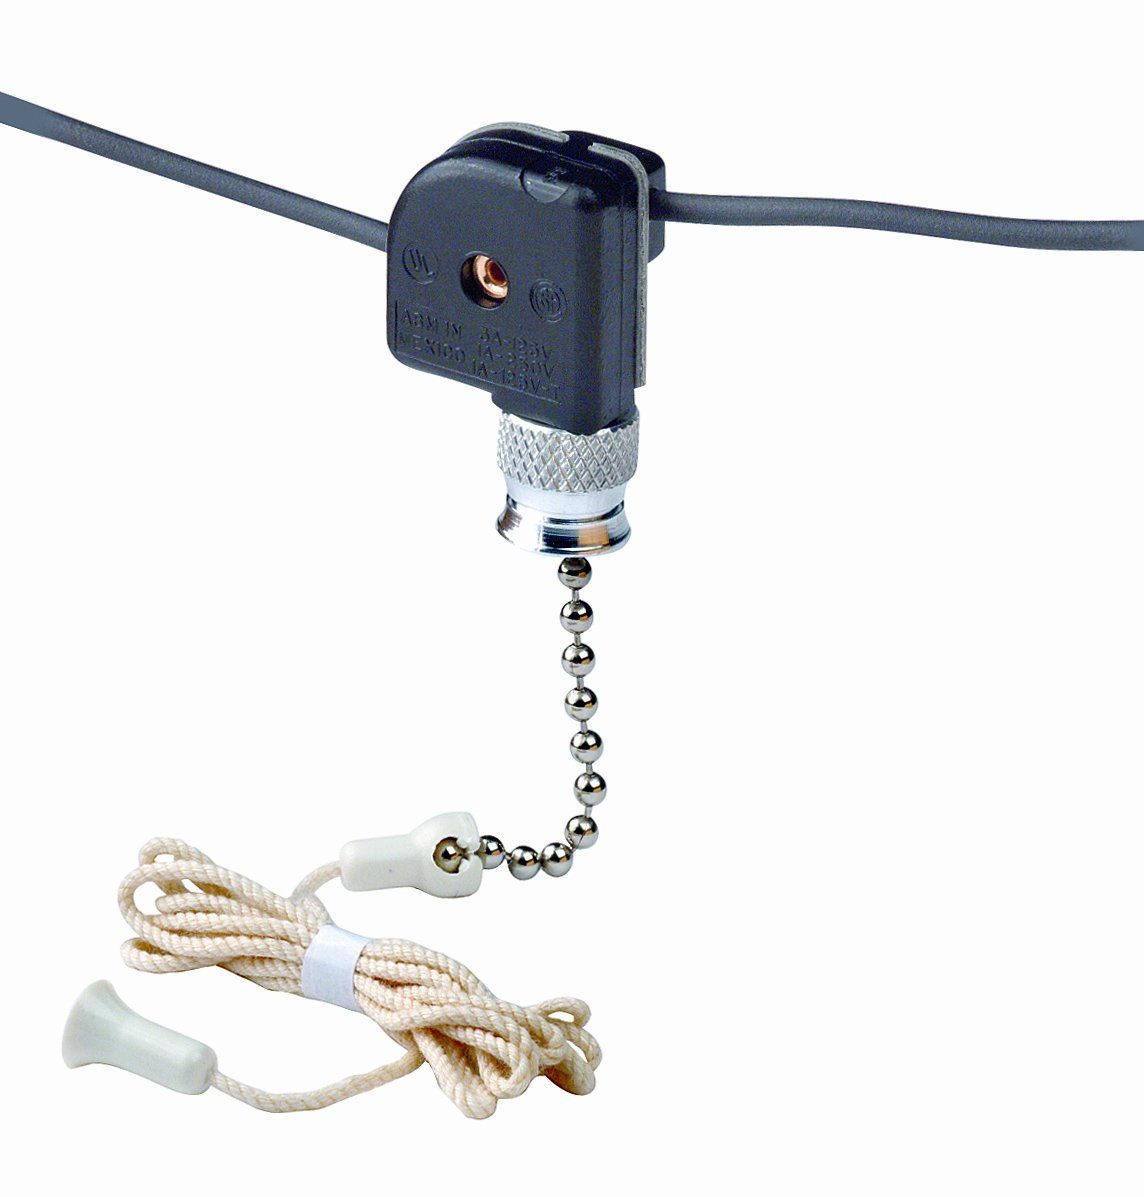 Leviton Pull Chain Switch Wiring Circuit And Diagram Hub 1689 50 10097 8 Single Pole On Off 1a 125v T 3a Rh Amazon Com Switches For Lamps